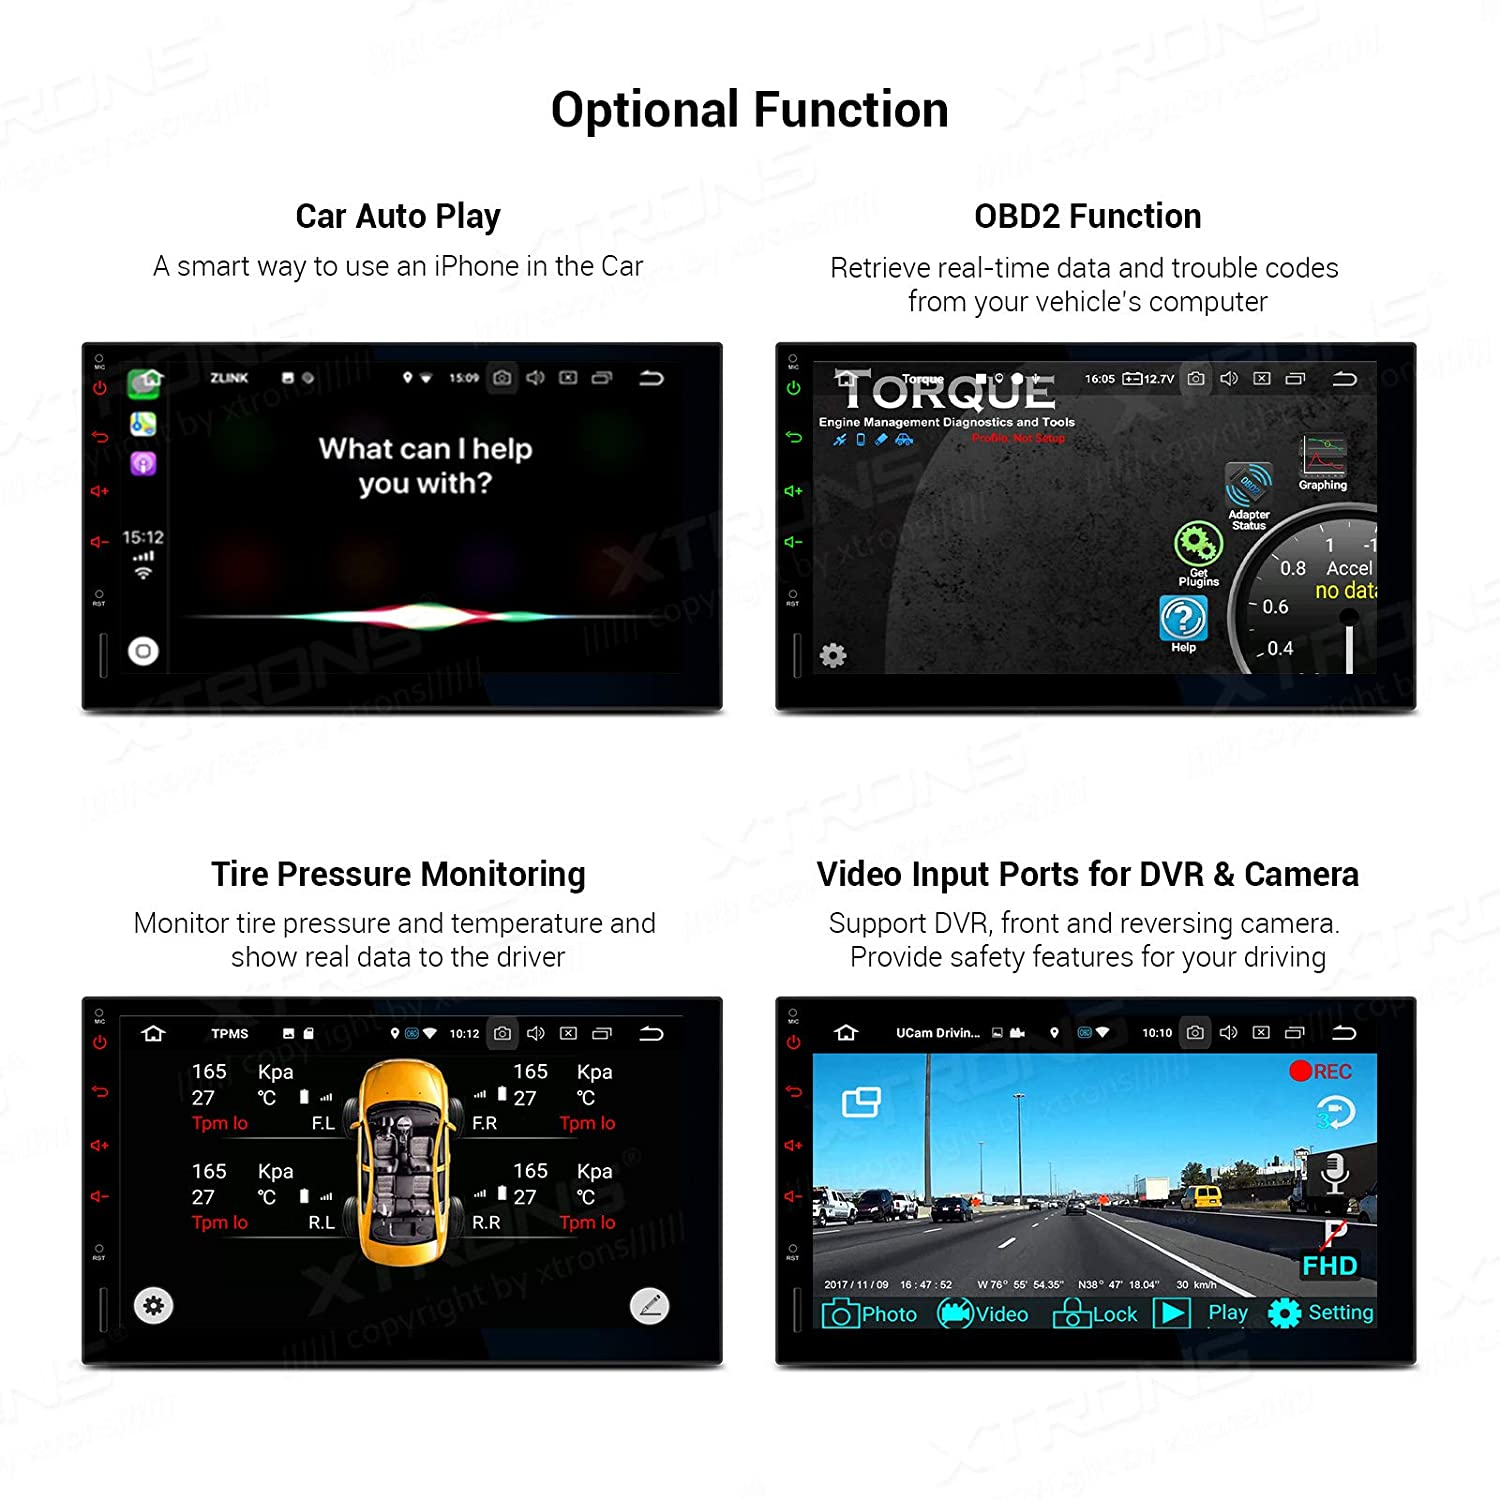 XTRONS Android 9.0 Car Stereo Radio Player Universal Double Din GPS Navigator Octa Core 4G RAM 32G ROM 7 Inch Multi-Touch Screen Head Unit Supports Screen Mirroring Backup Camera OBD2 WiFi DVR TPMS